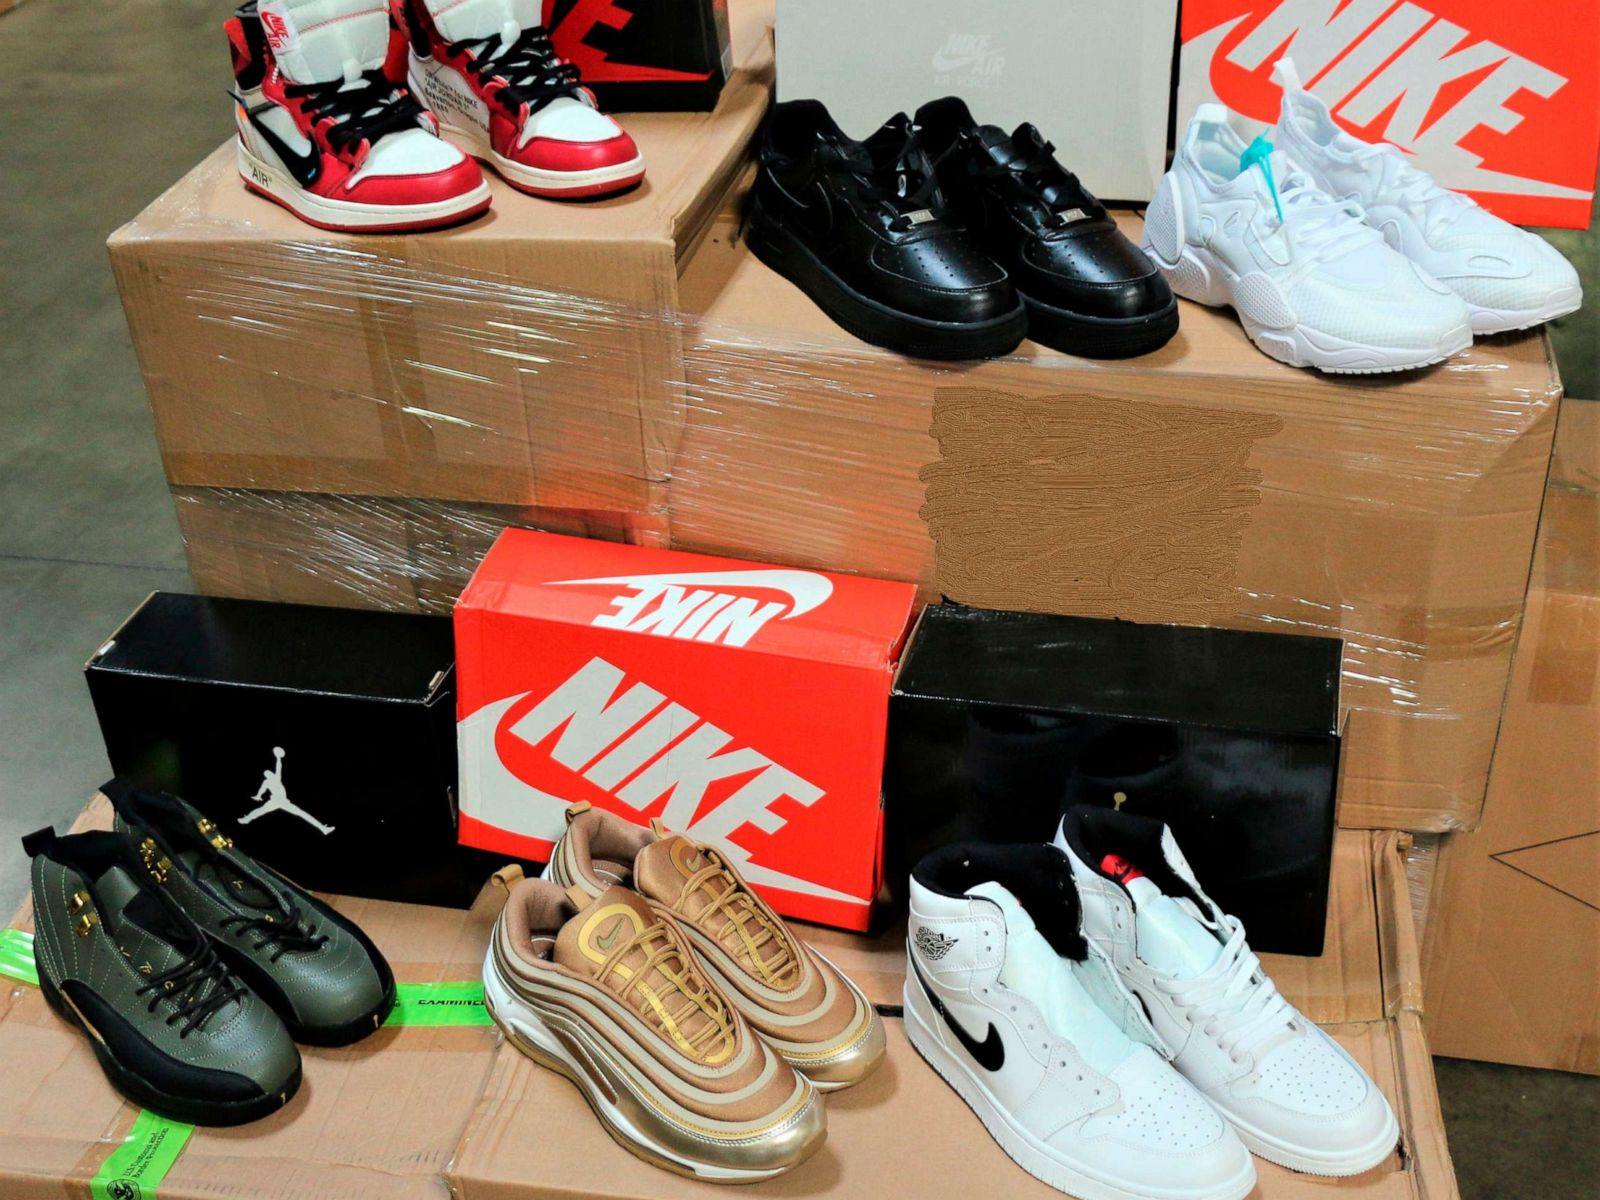 Coveted retro Air Jordans among 14,800 counterfeit Nike